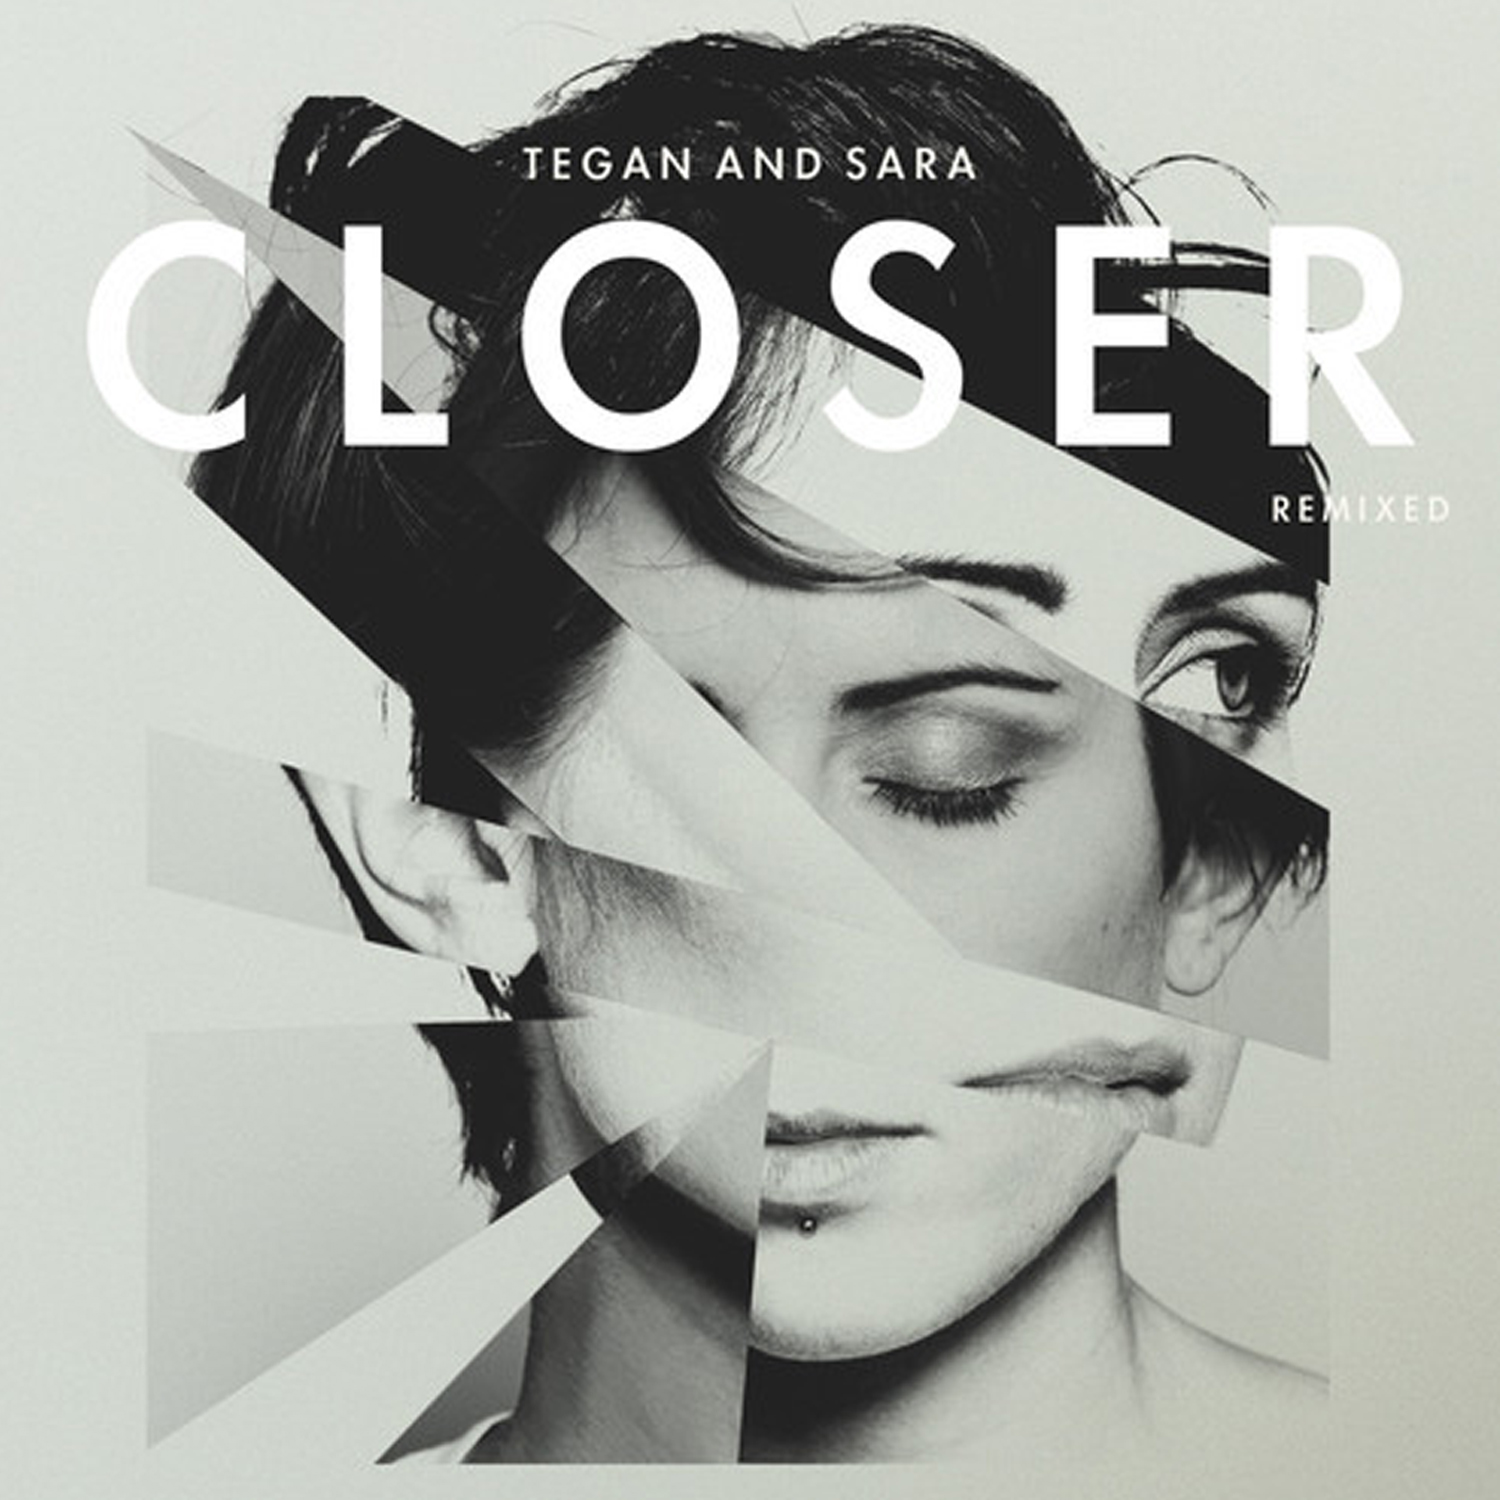 Tegan and Sara   Closer    2013